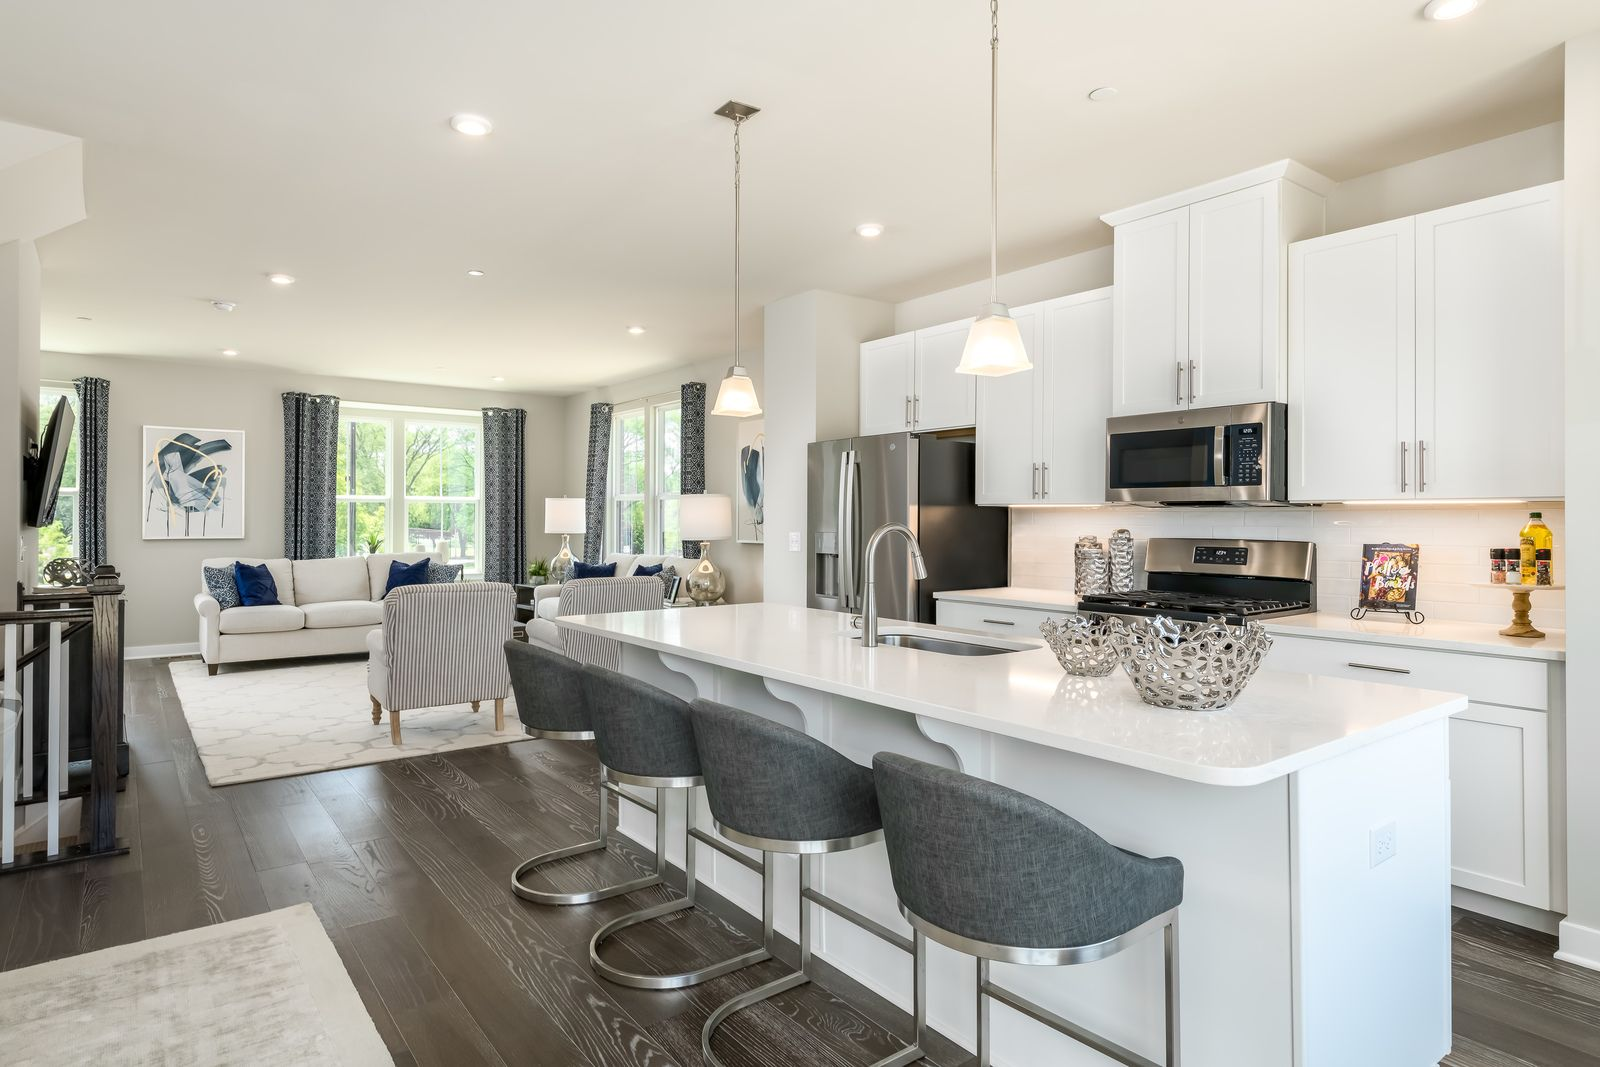 Kitchen featured in the Mozart 2-Car Garage By Ryan Homes in Chicago, IL